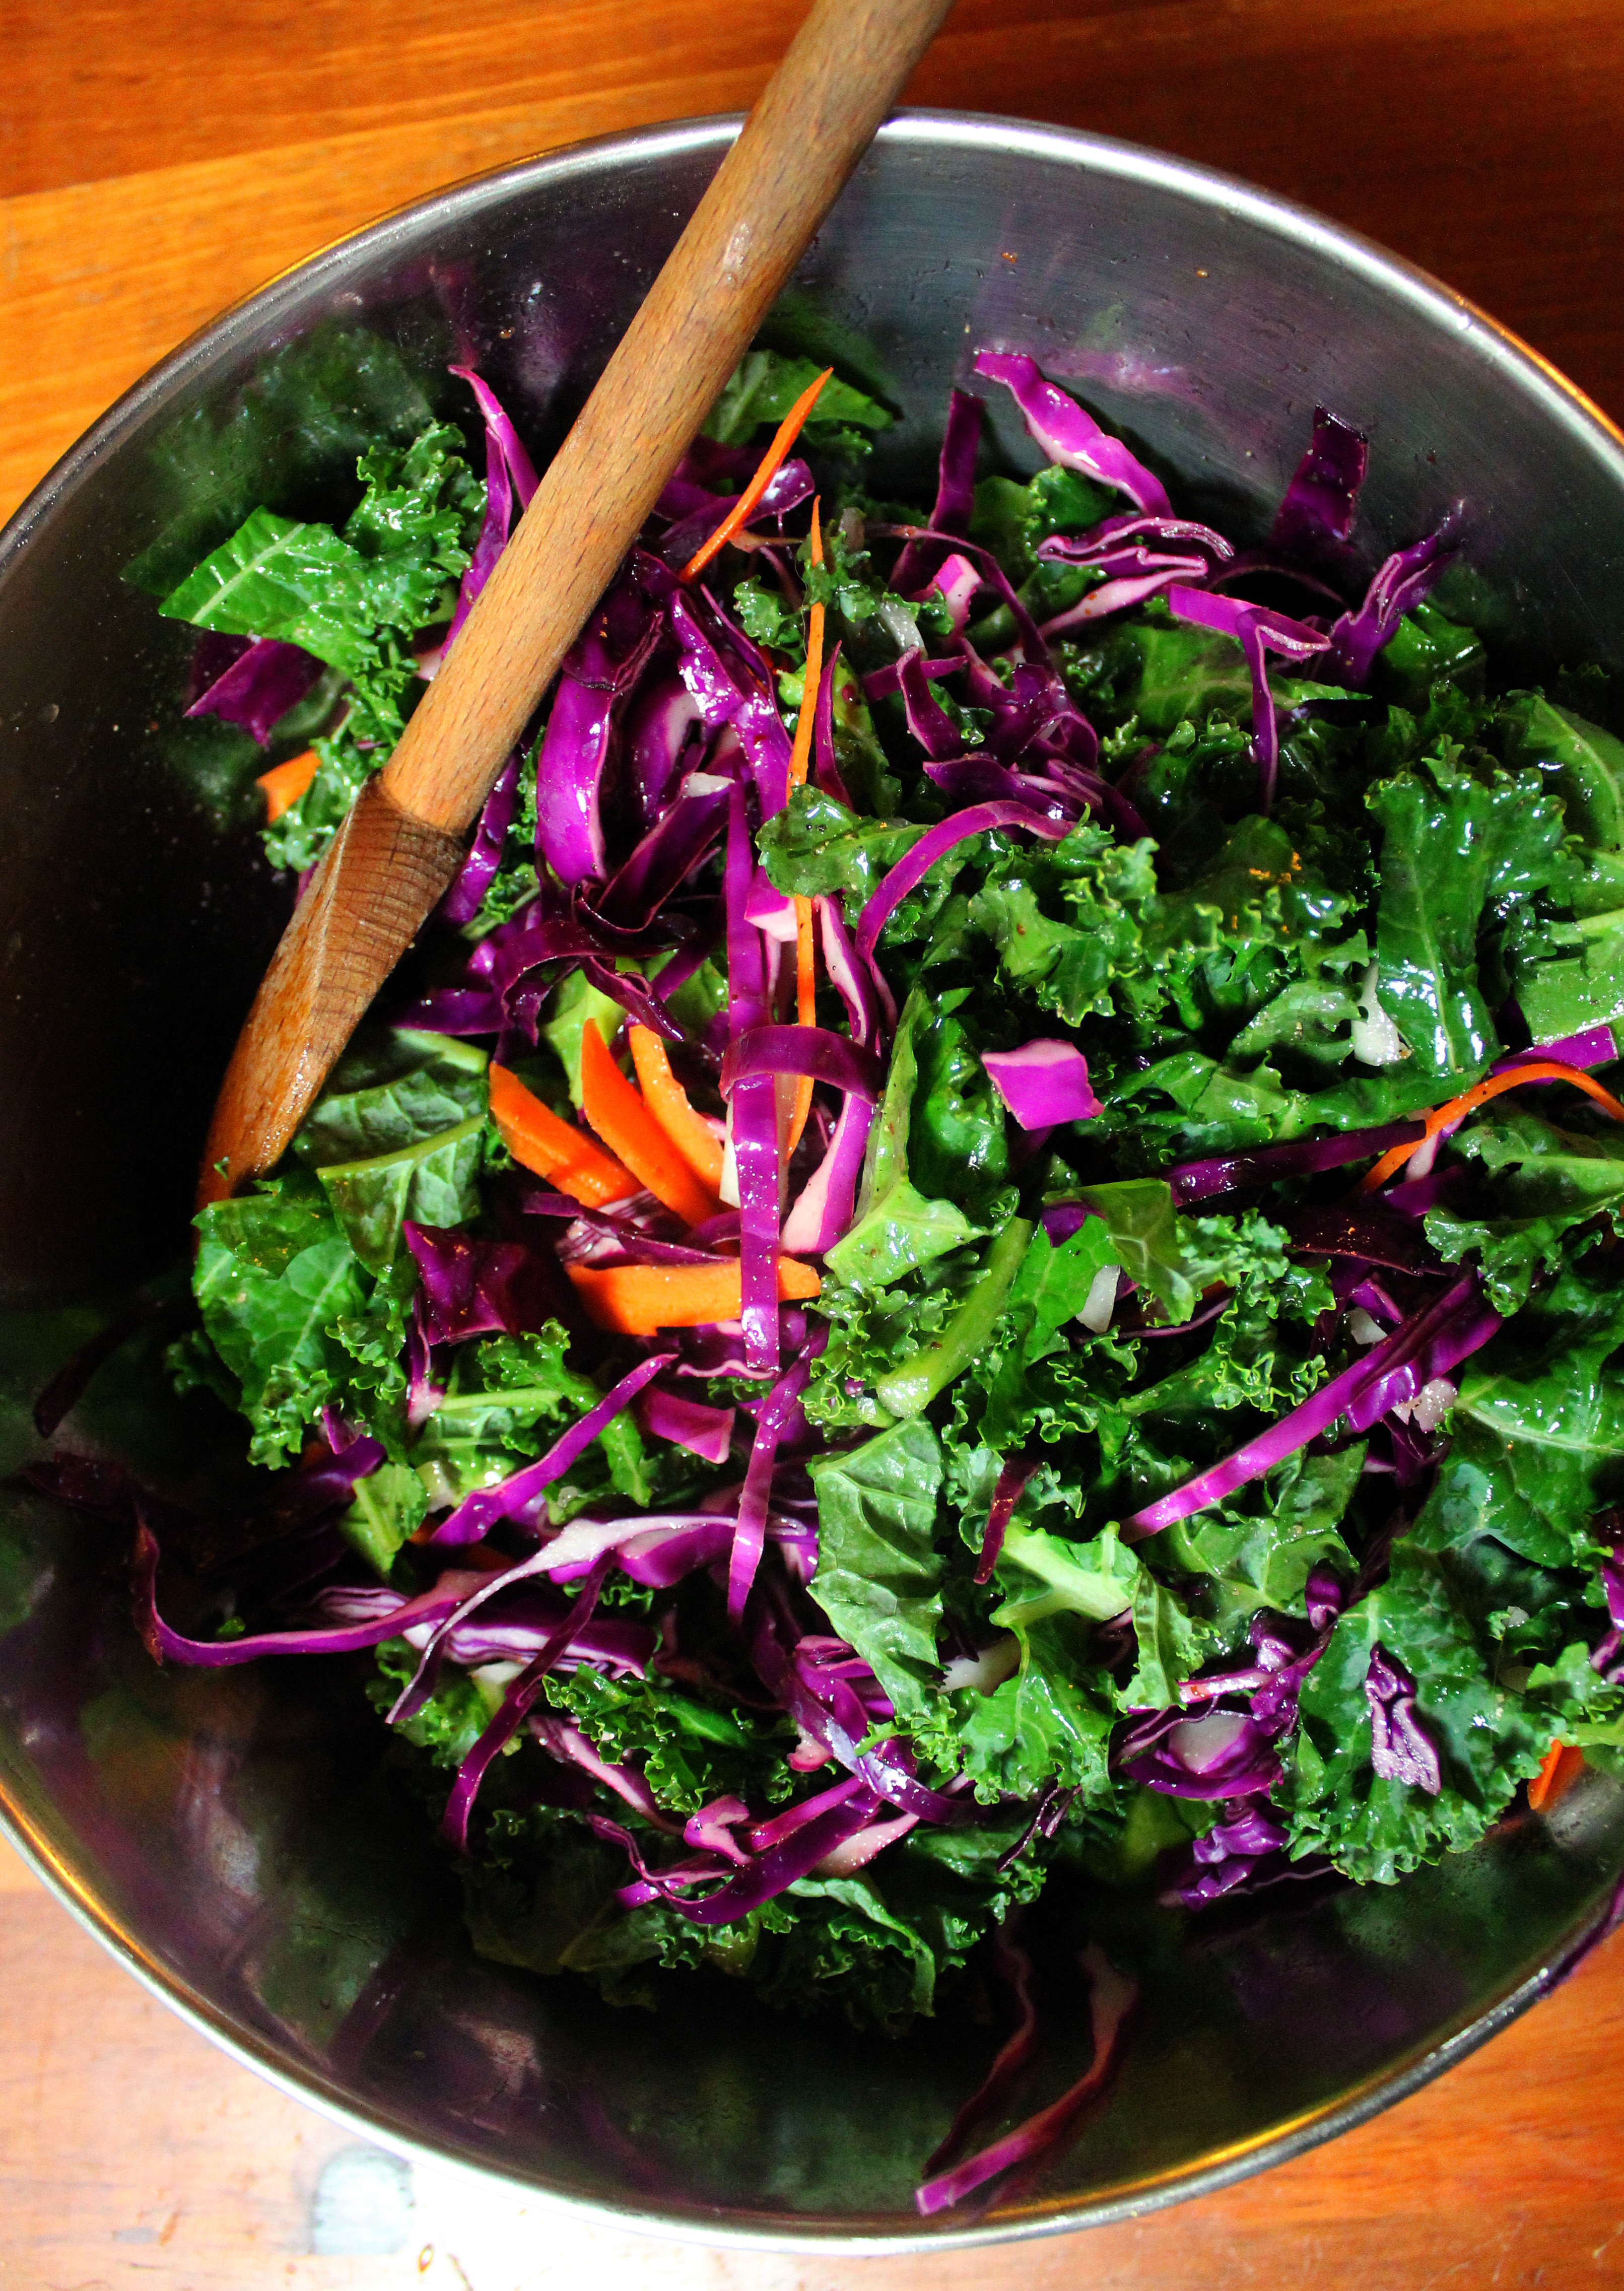 Is Red Kale Good For Dogs